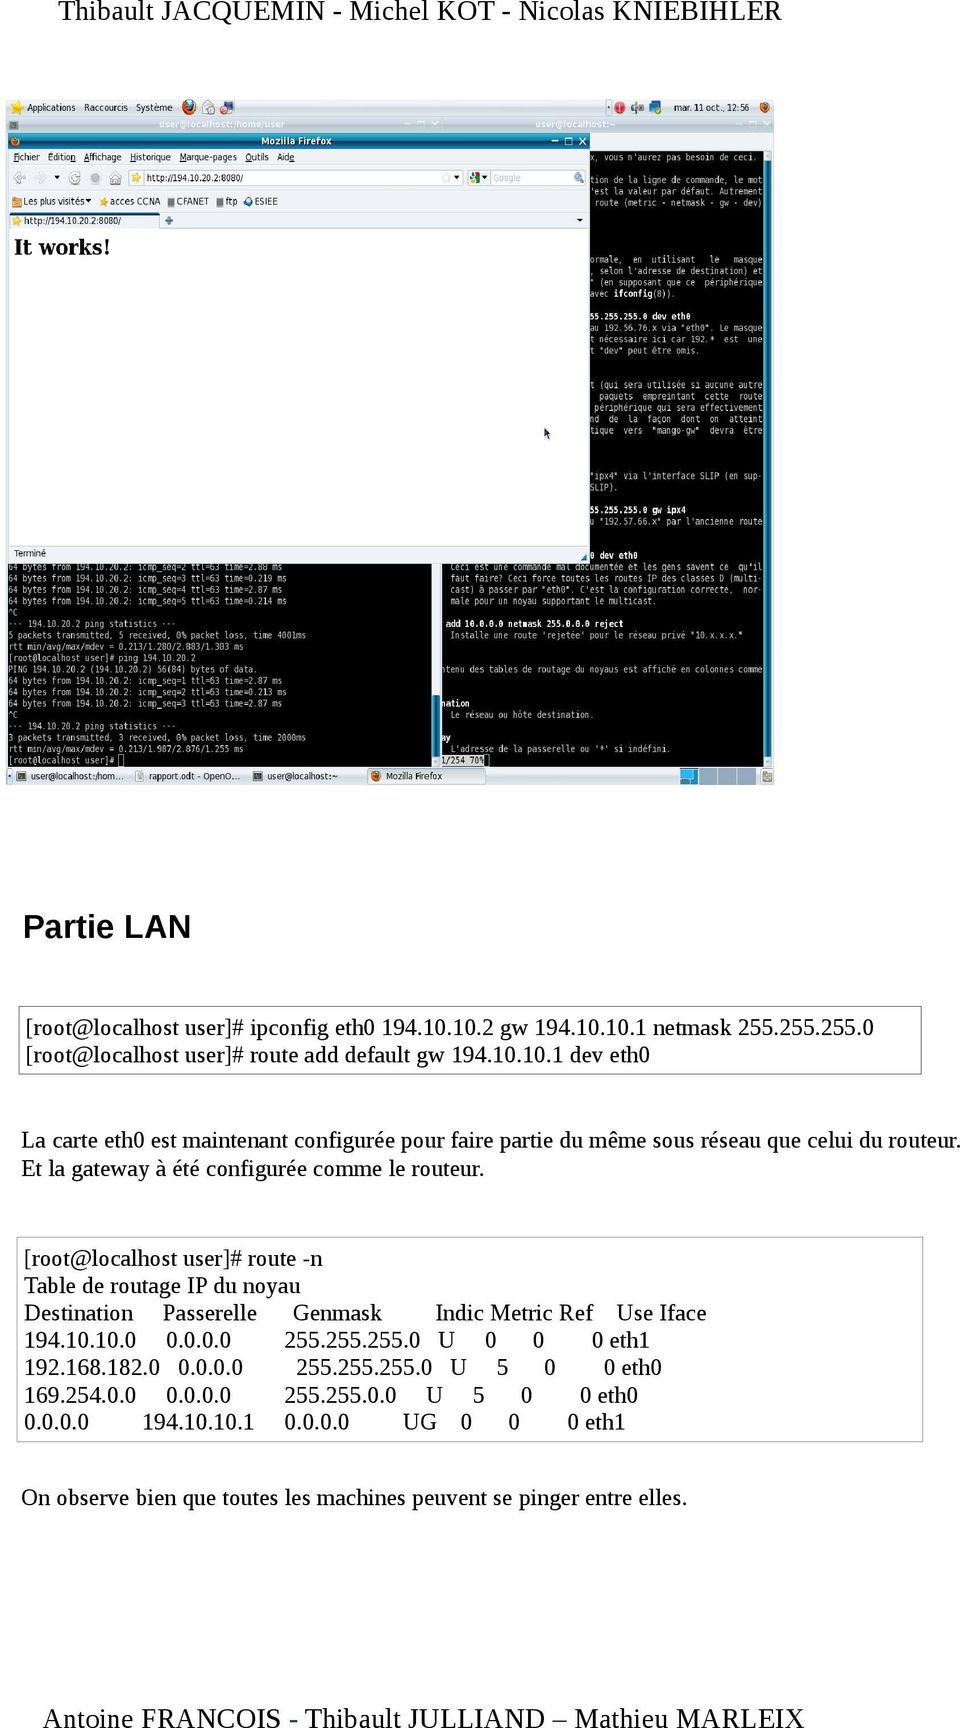 [root@localhost user]# route -n Table de routage IP du noyau Destination Passerelle Genmask Indic Metric Ref Use Iface 194.10.10.0 0.0.0.0 255.255.255.0 U 0 0 0 eth1 192.